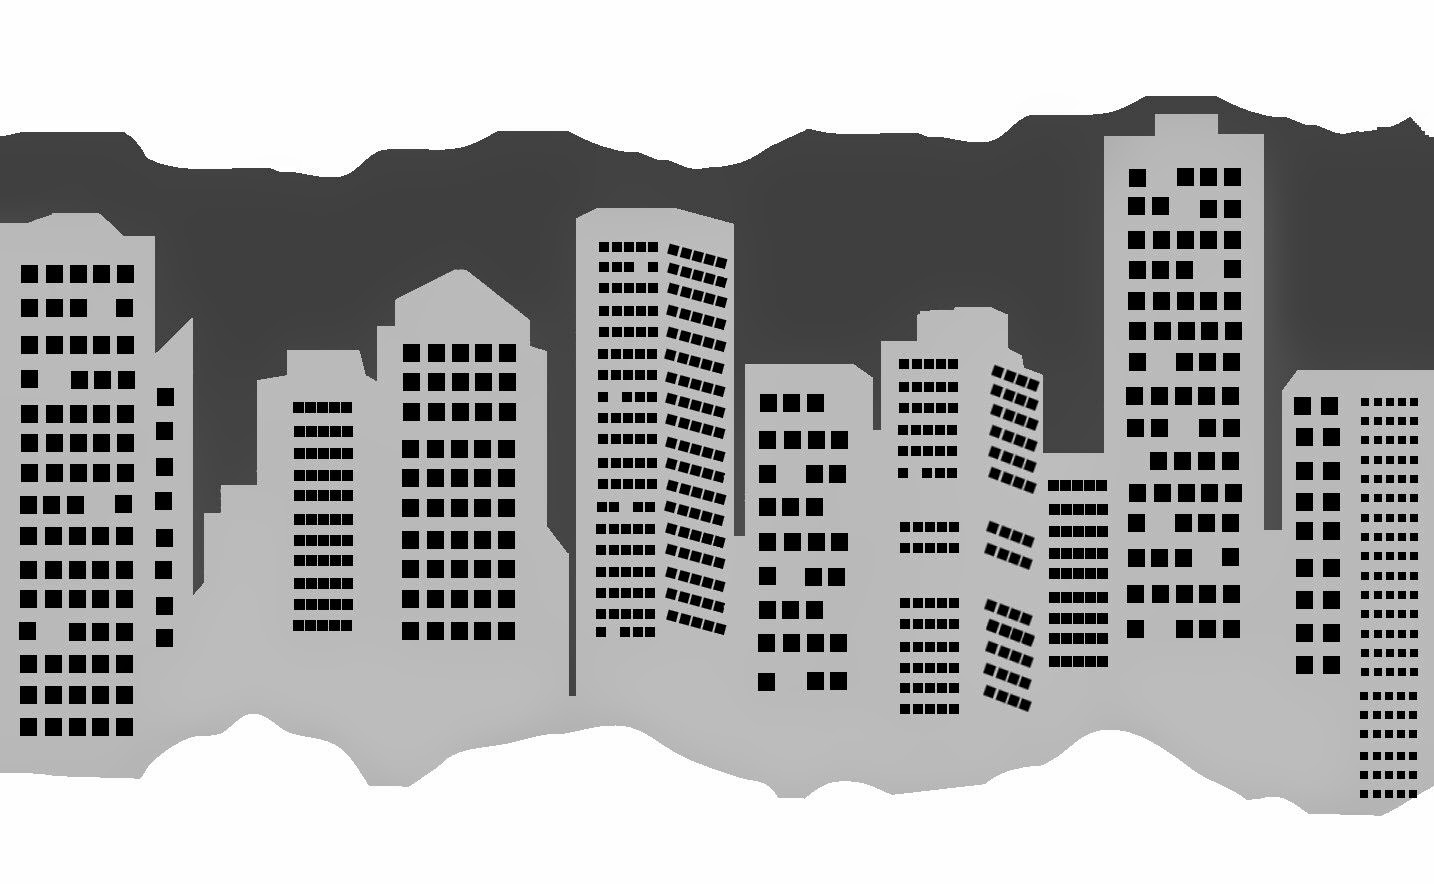 Winter in the City graphic by eSheep Designs